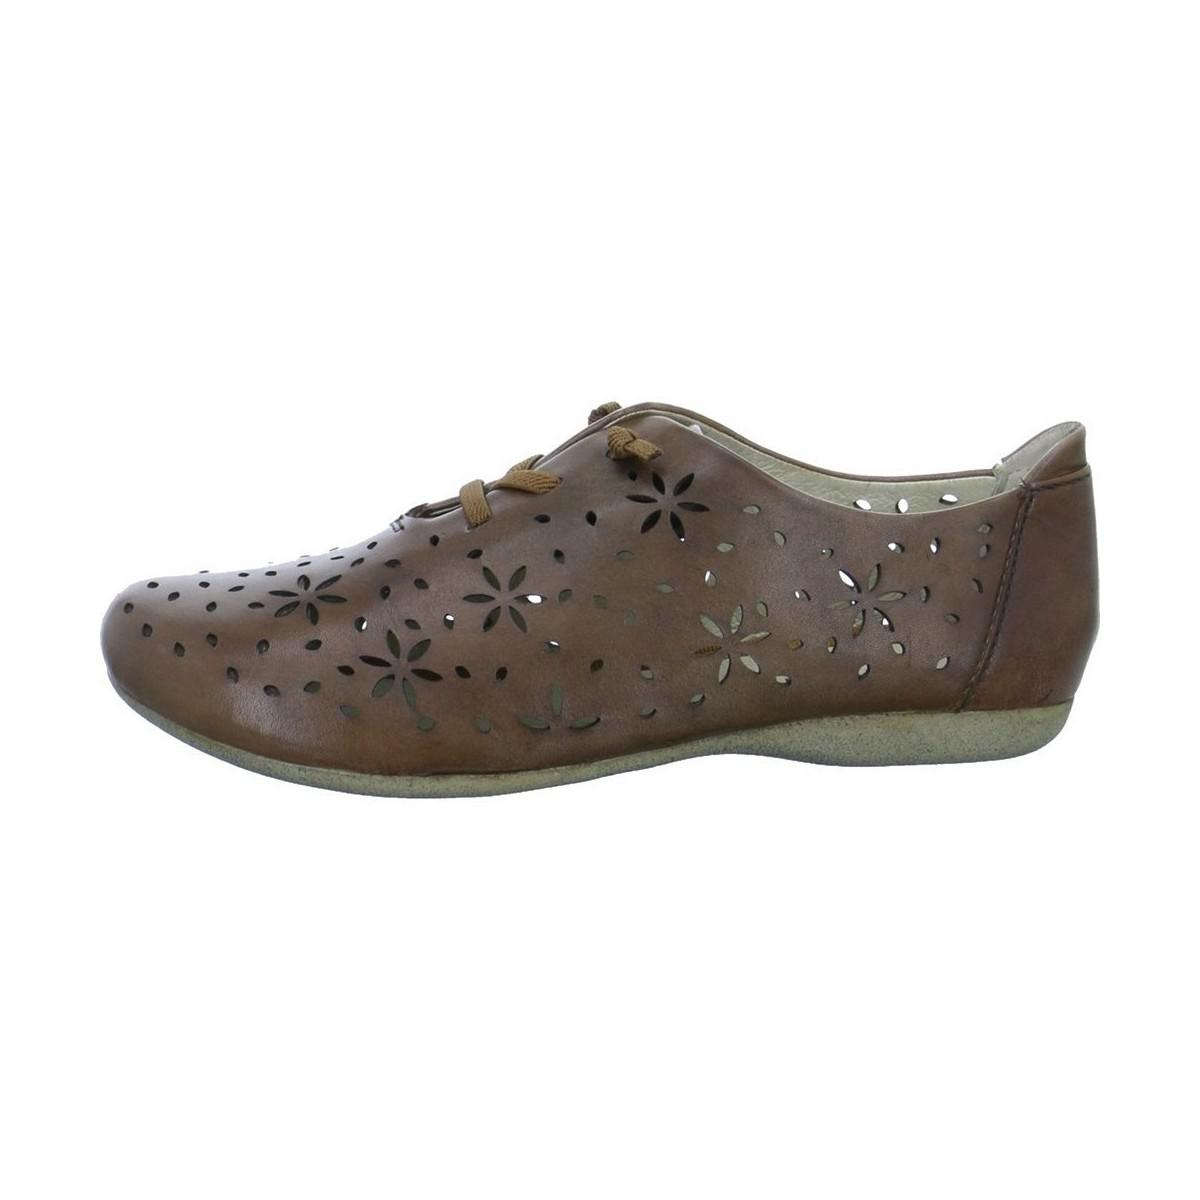 Buy Cheap Shopping Online Josef Seibel Fiona women's Casual Shoes in Free Shipping 100% Original Clearance Marketable m8EJPyursd